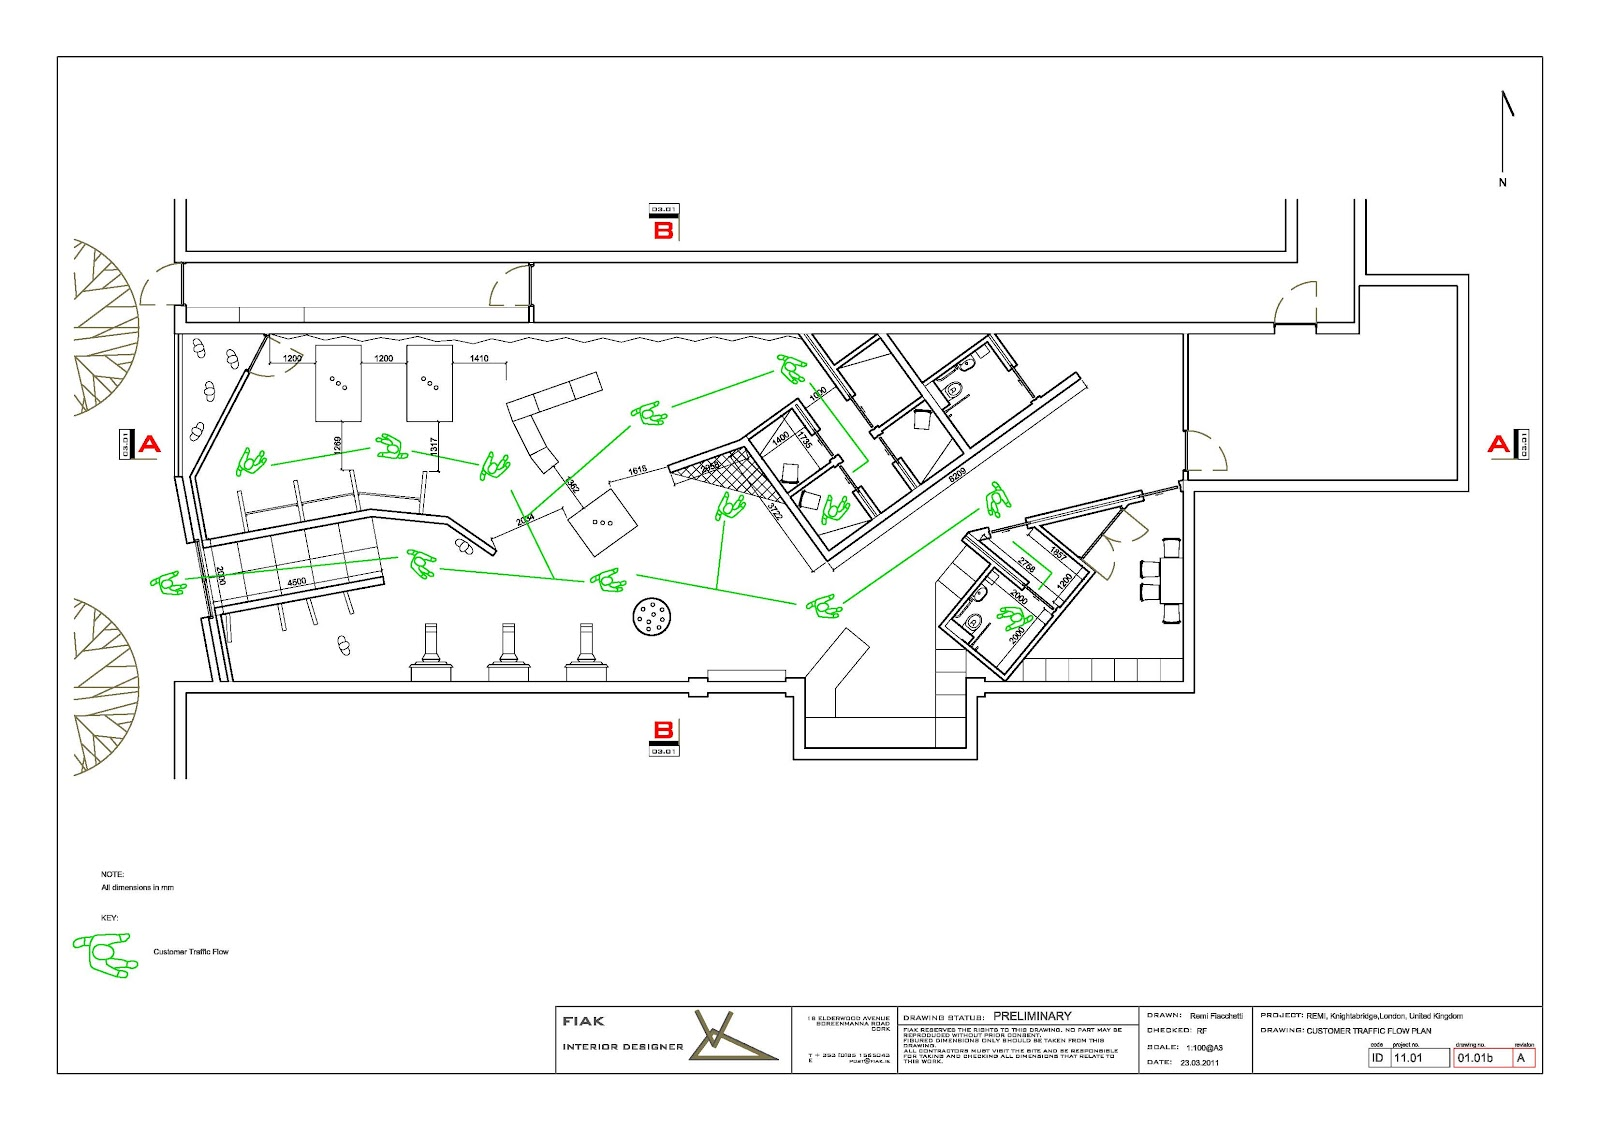 The Gallery For Shopping Mall Interior Sketch